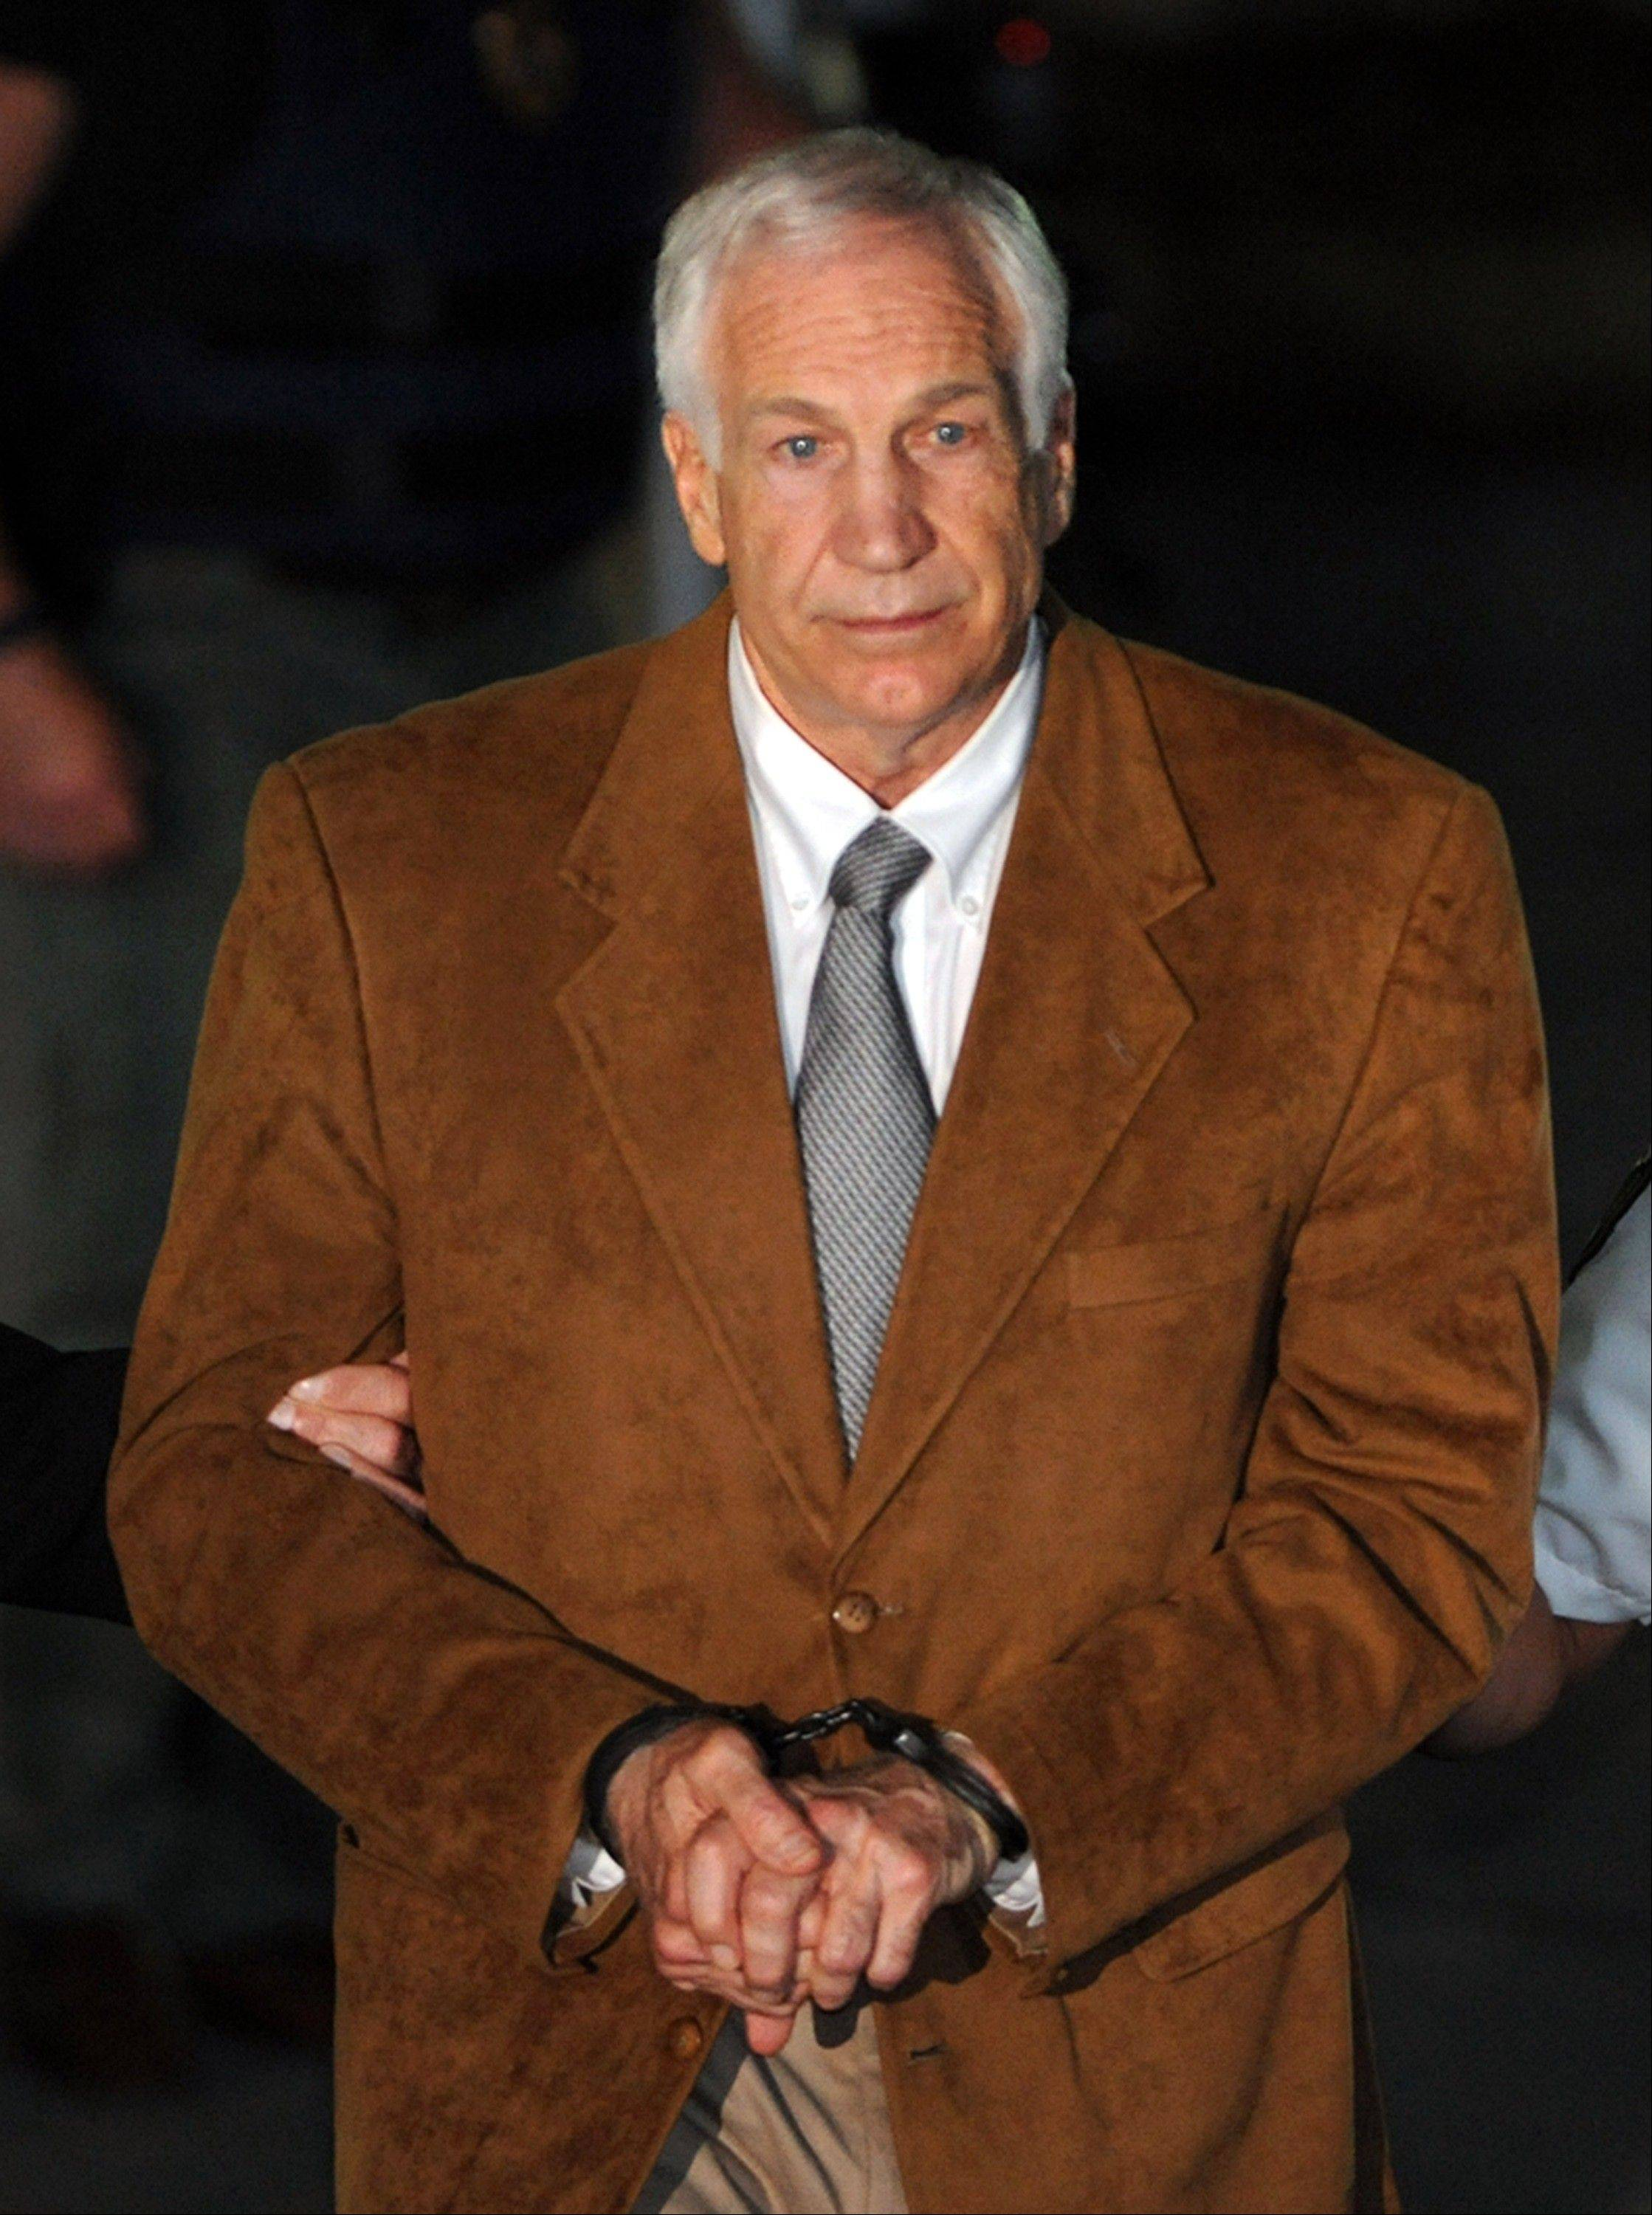 What's next for Jerry Sandusky after the trial?